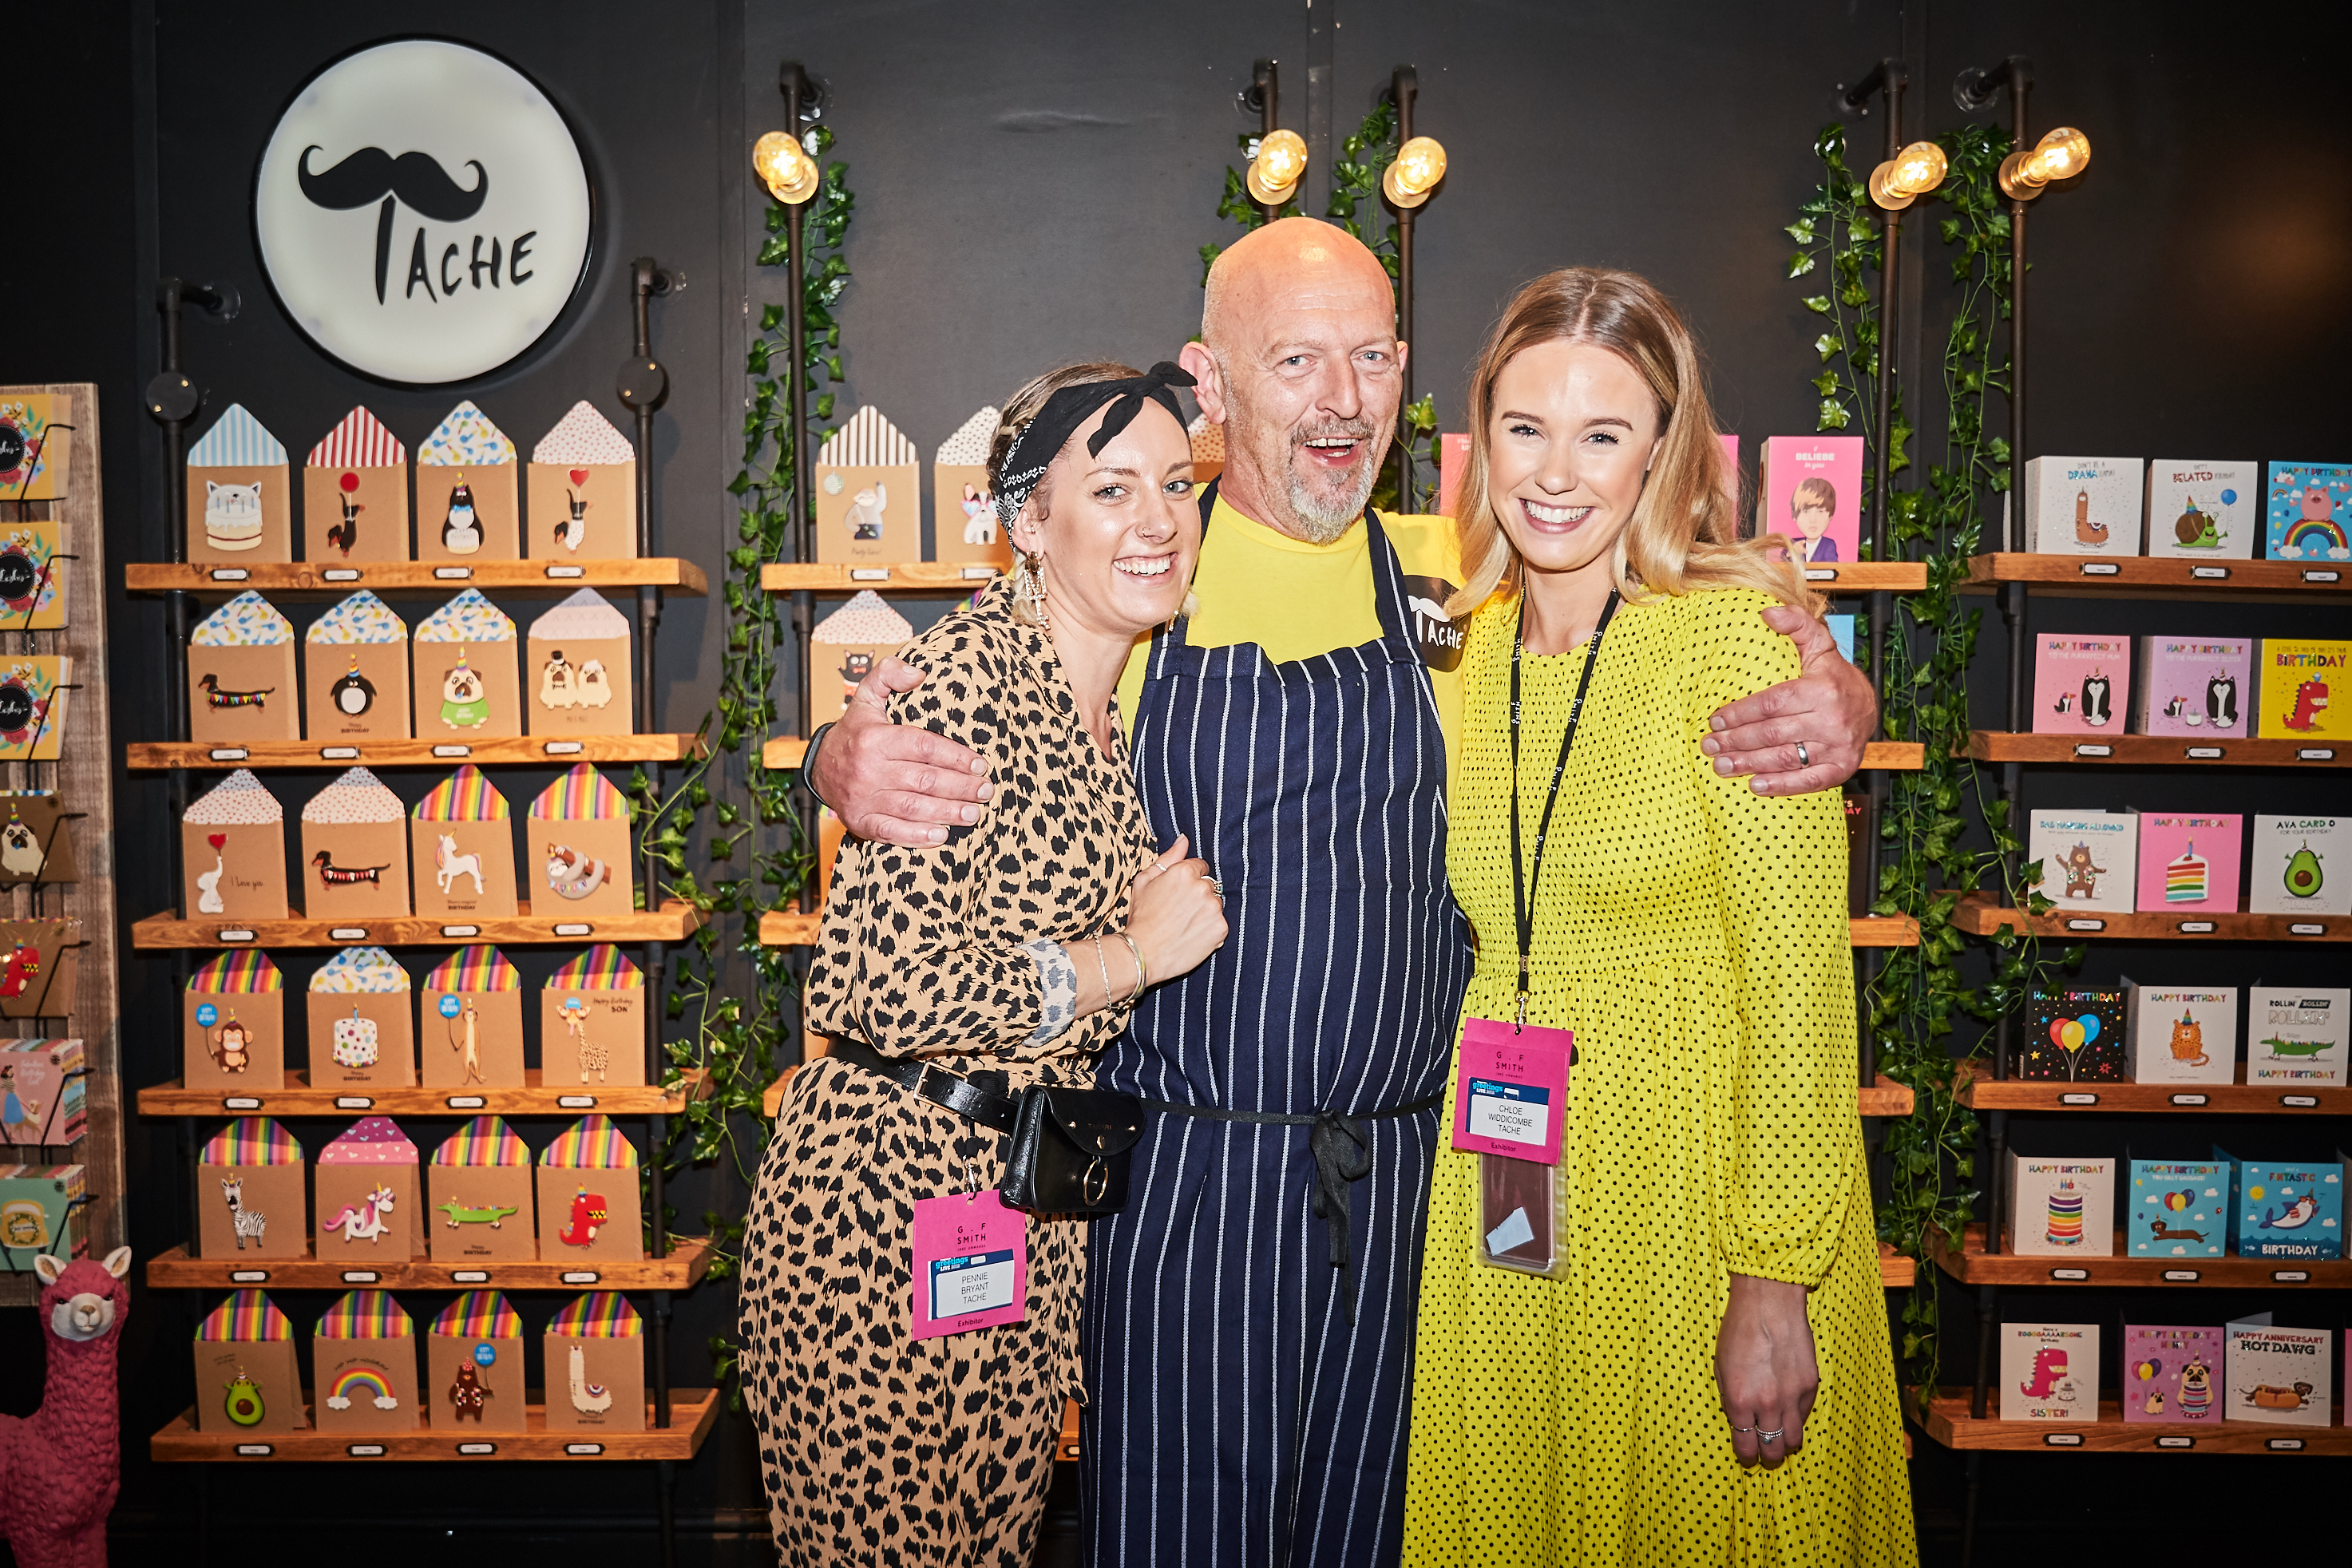 Above: Tache's Pennie Bryant (left) and Chloe Widdicombe with PG Live's head of catering, Liam Keating on the company's stand.